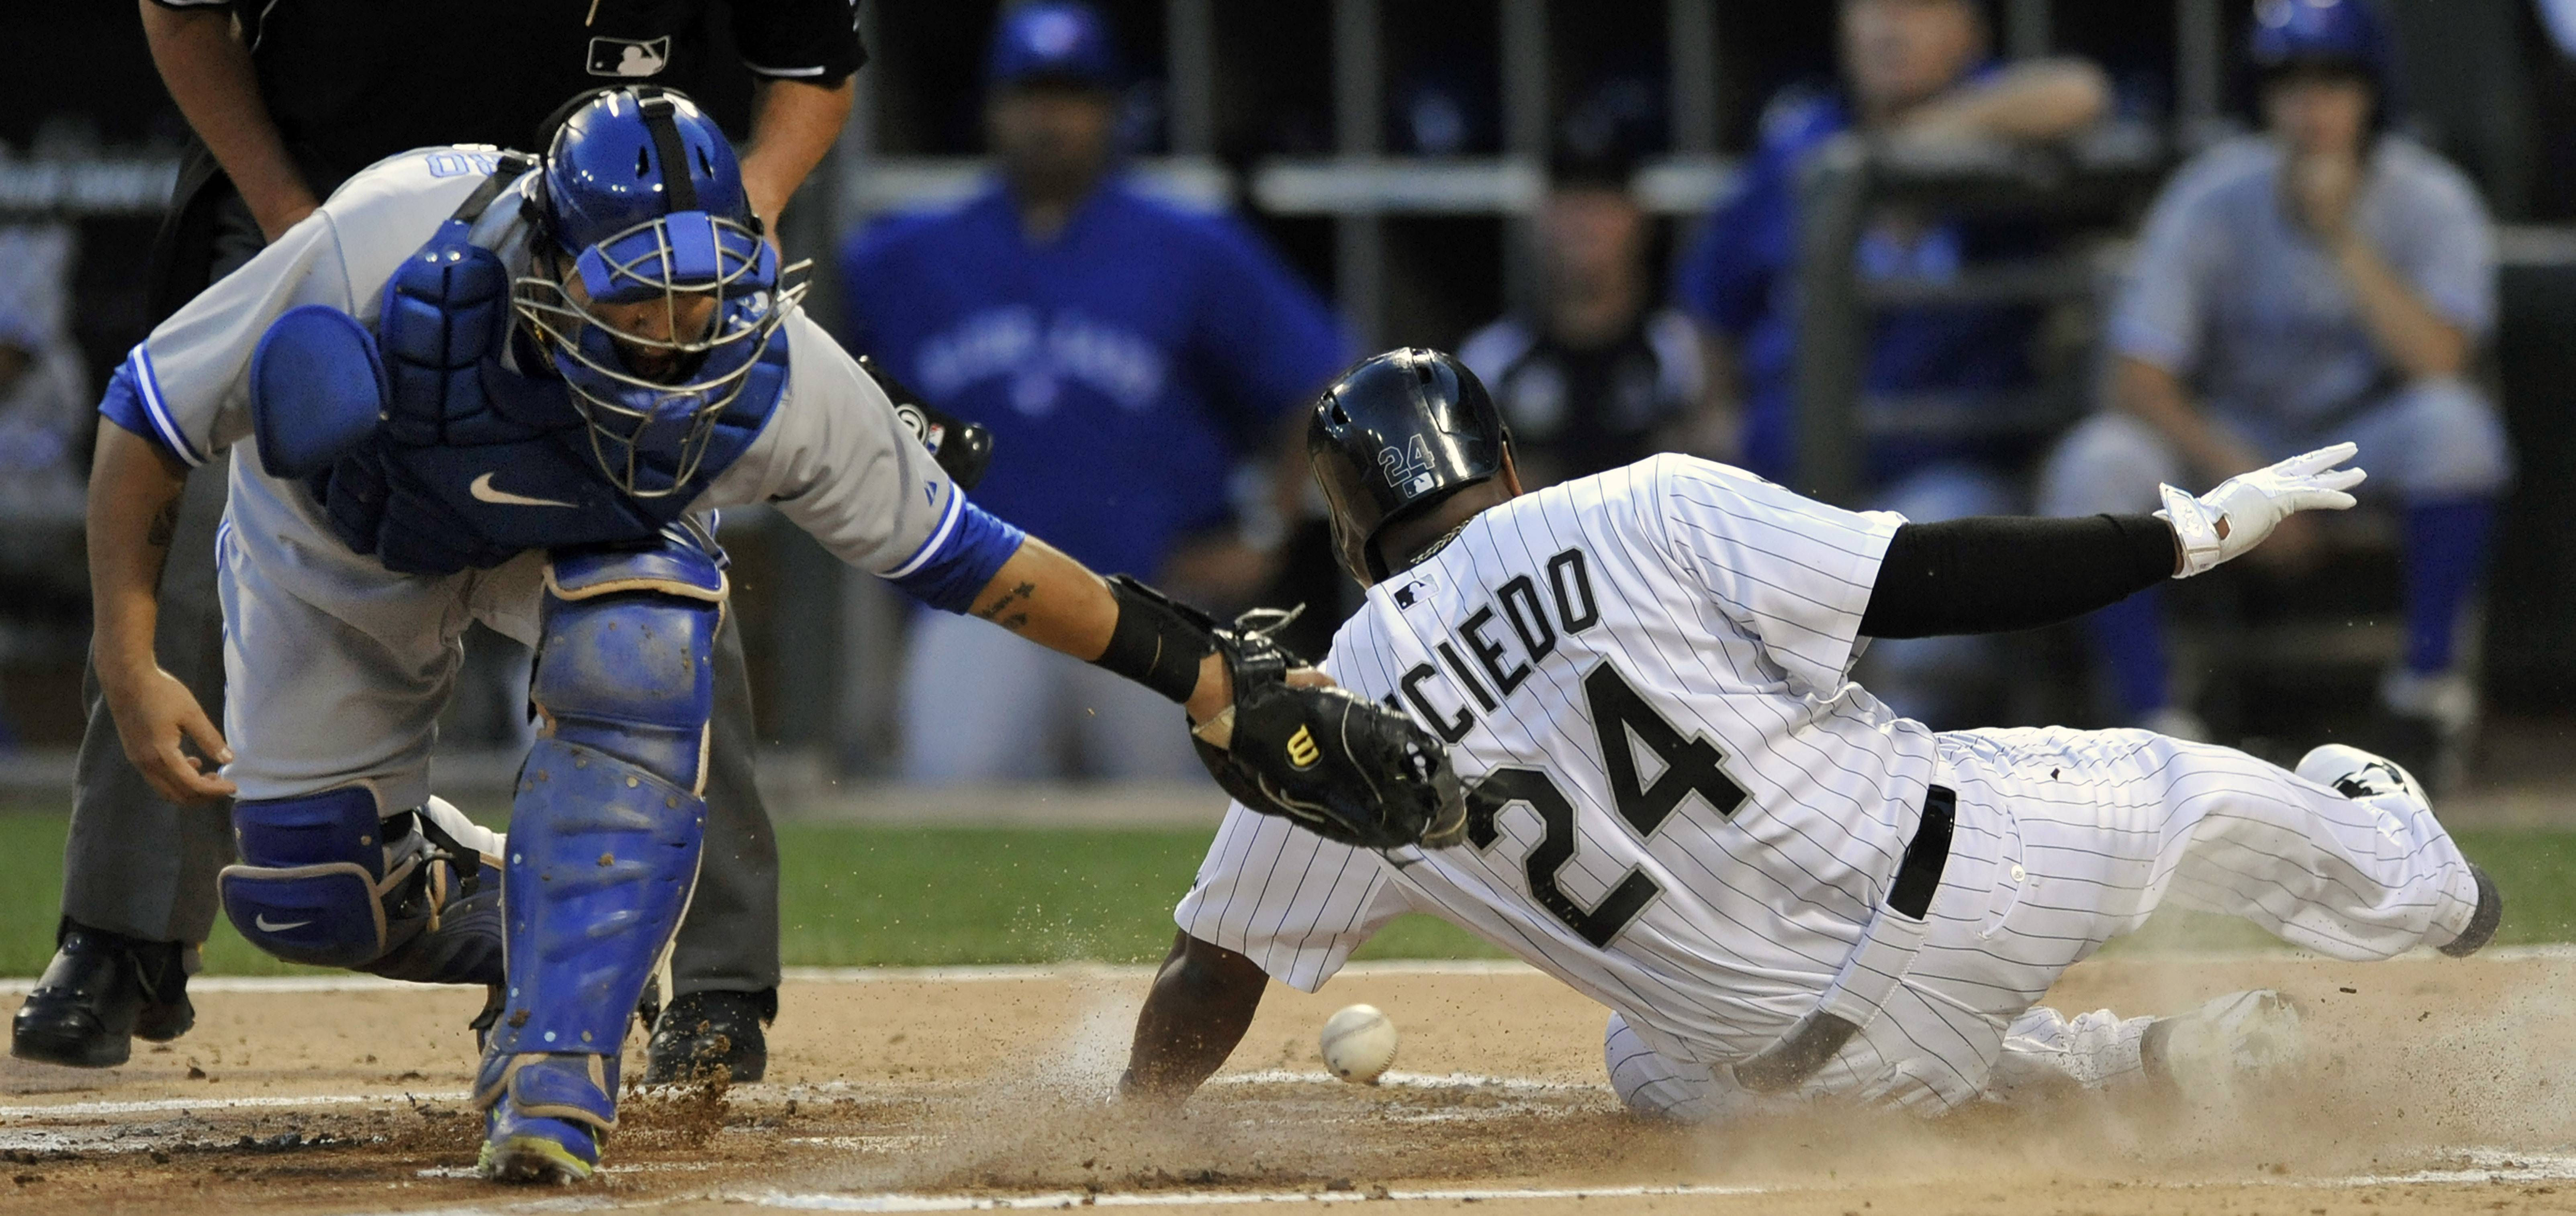 Dayan Viciedo of the White Sox scores in the first inning as Toronto Blue Jays' catcher Dioner Navarro is late trying to apply the tag in Friday's contest.